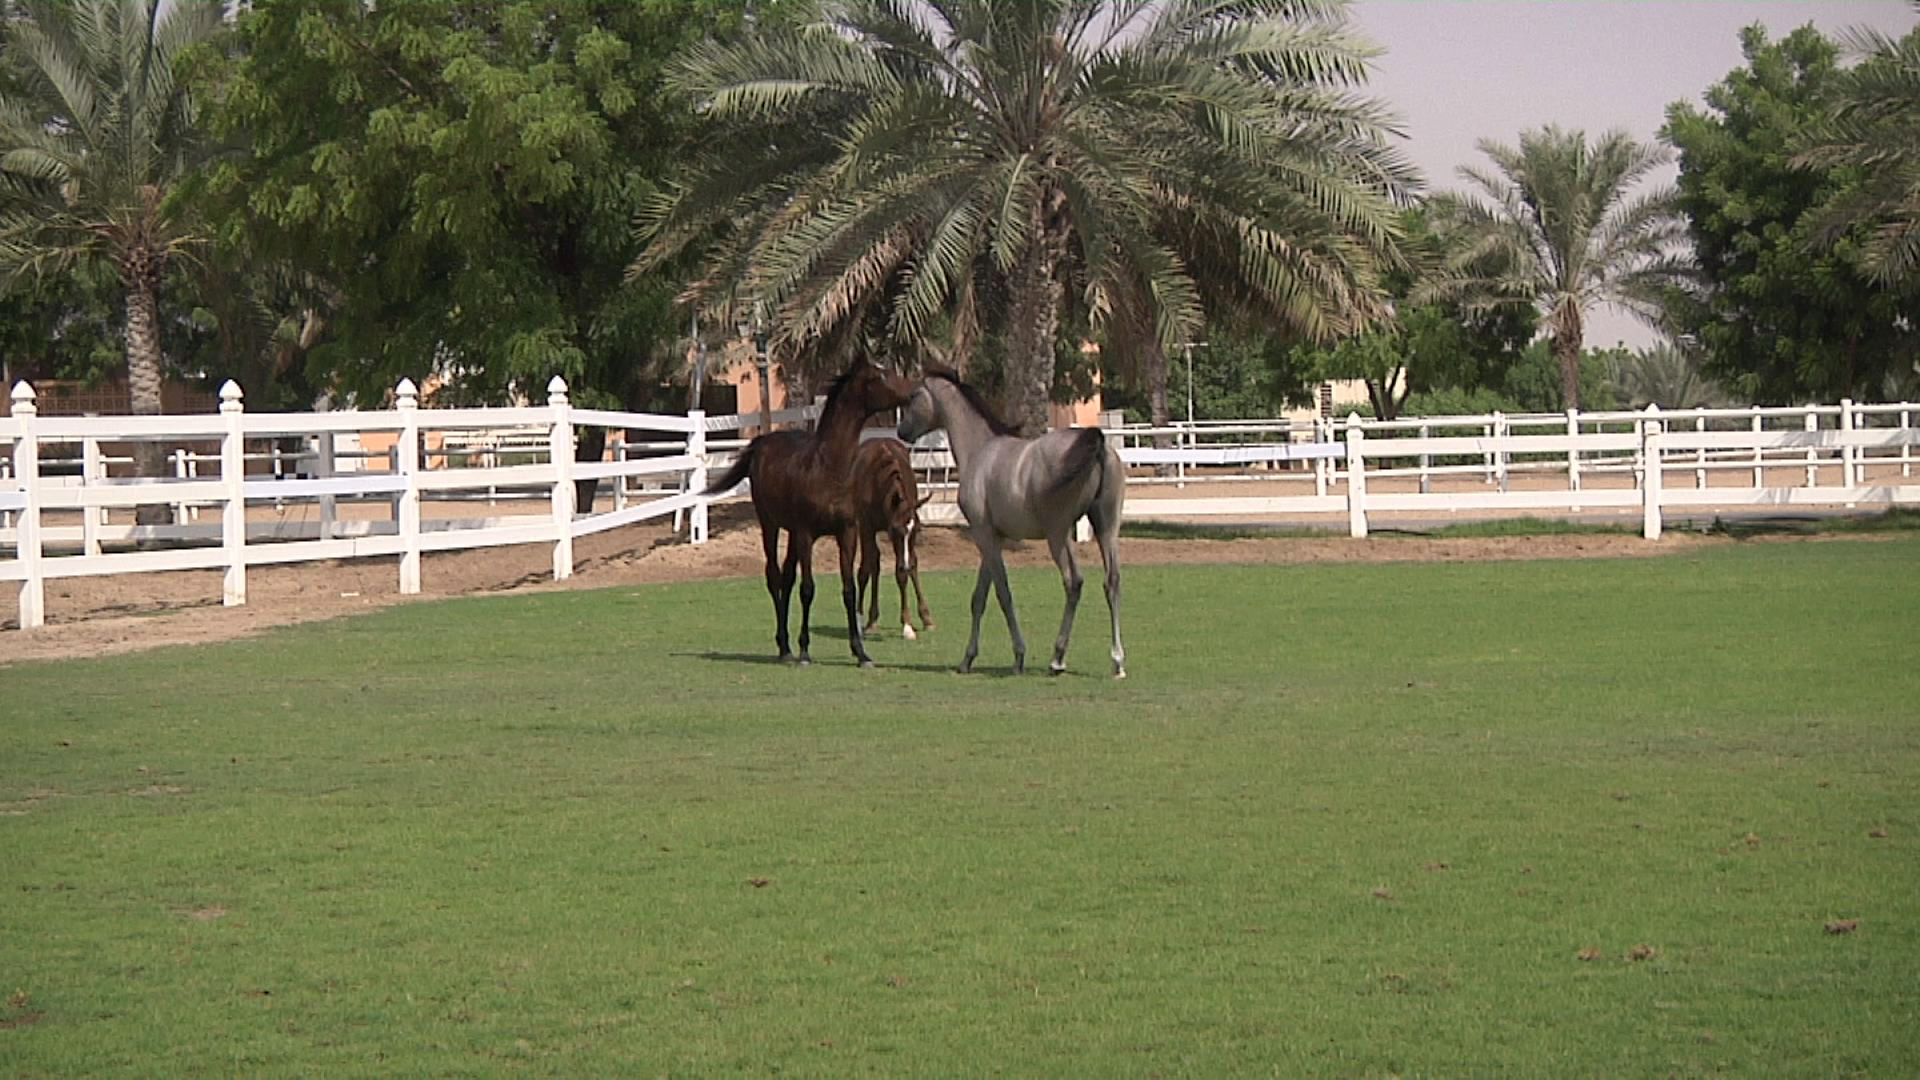 Video - Sharja2014_QasbaWasser Sharjah Equestrian Center (Pferdezentrum)